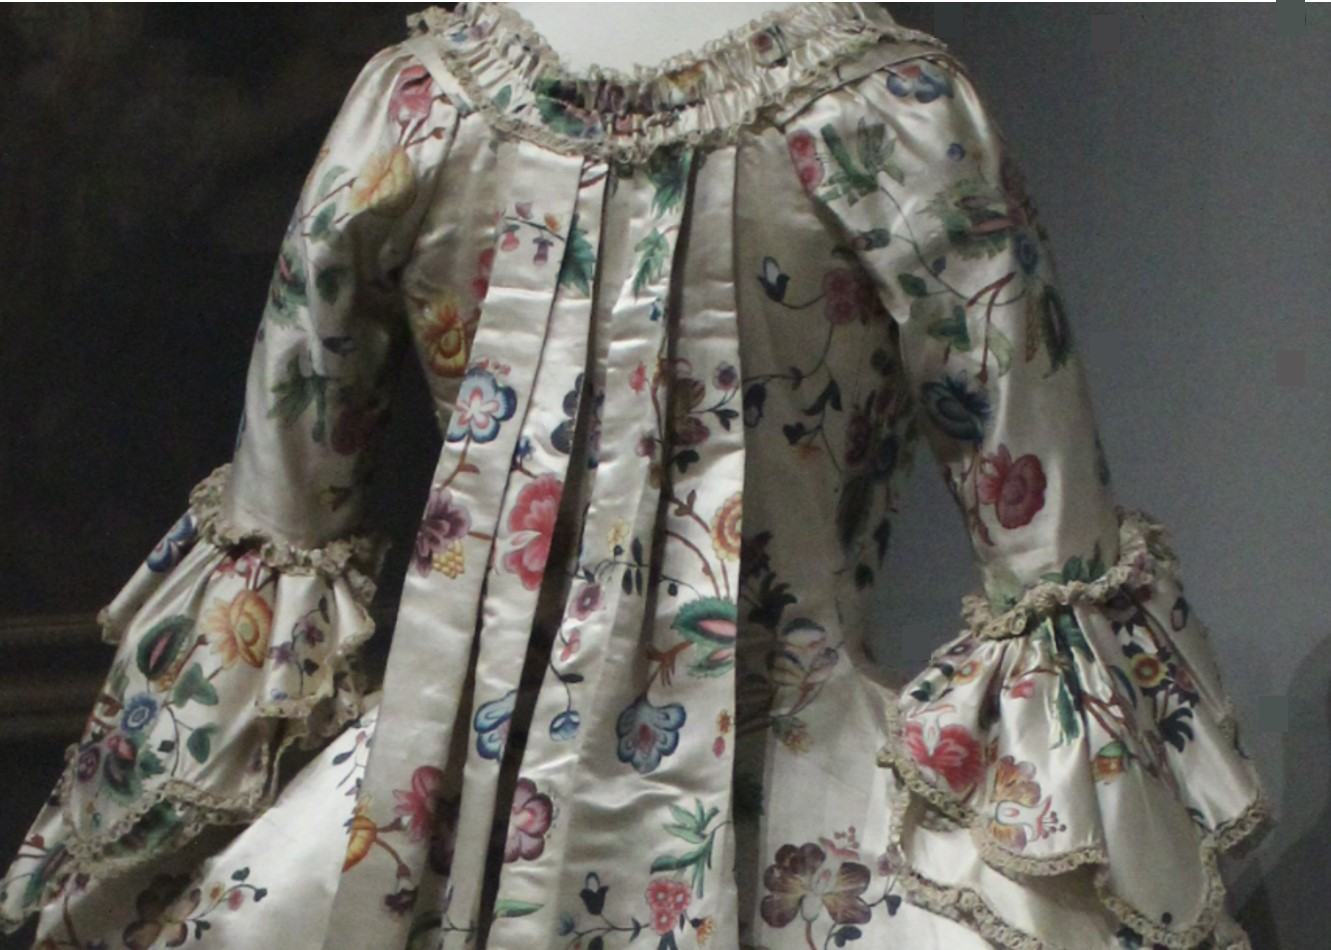 f46e7062b84 A robe à la française from around 1760 – 1770